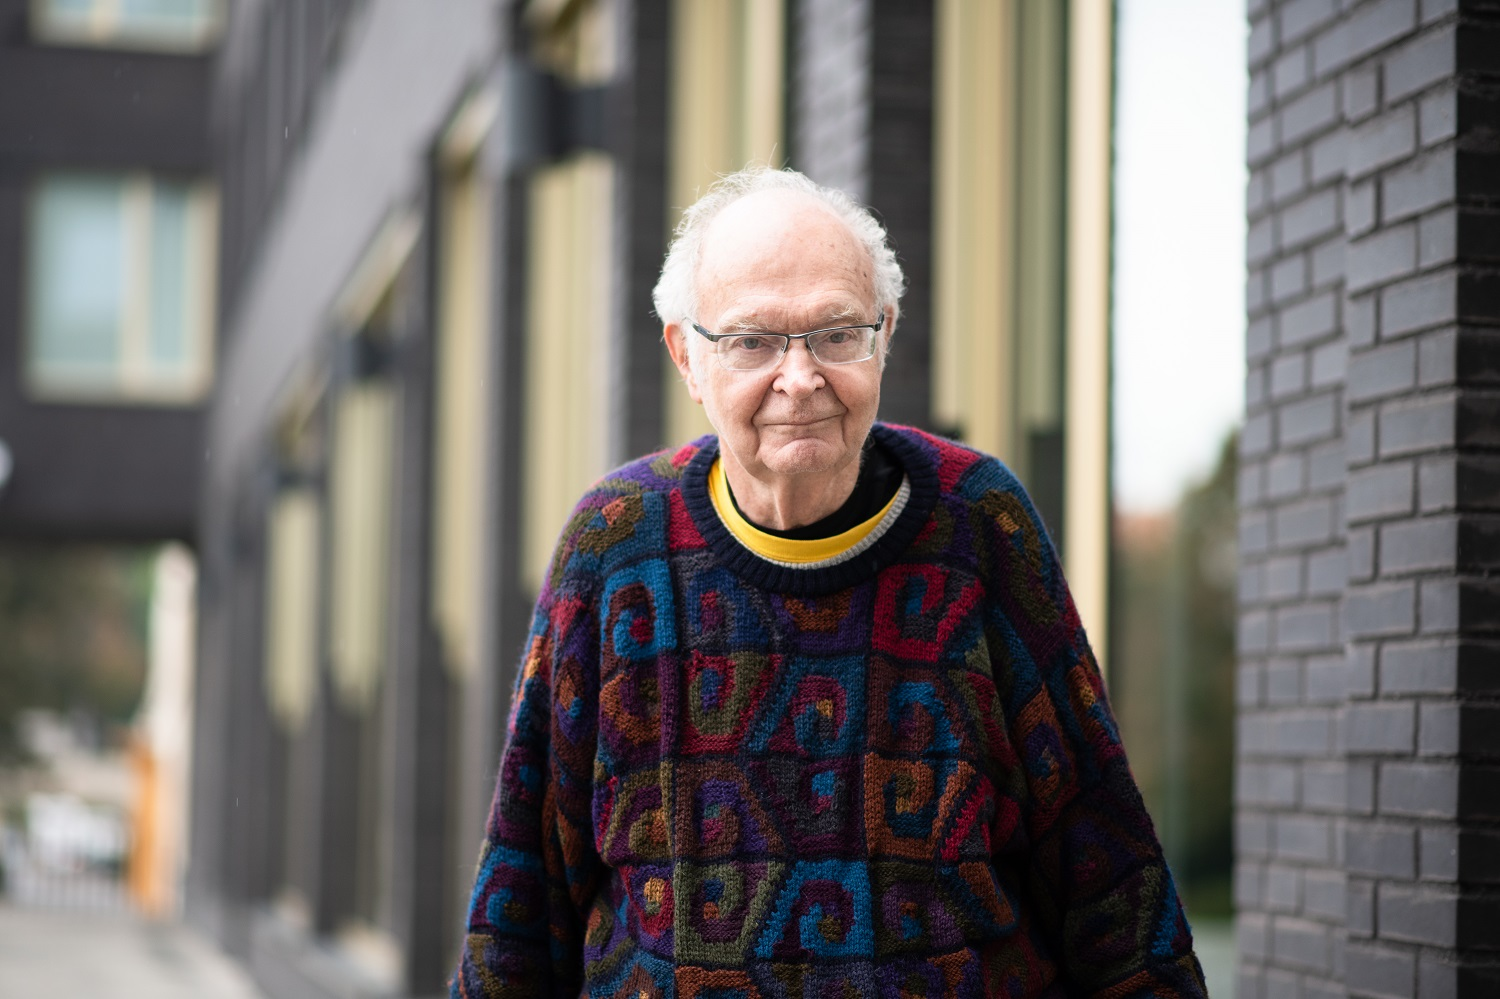 Donald E. Knuth-Boundless Interests at FI MU